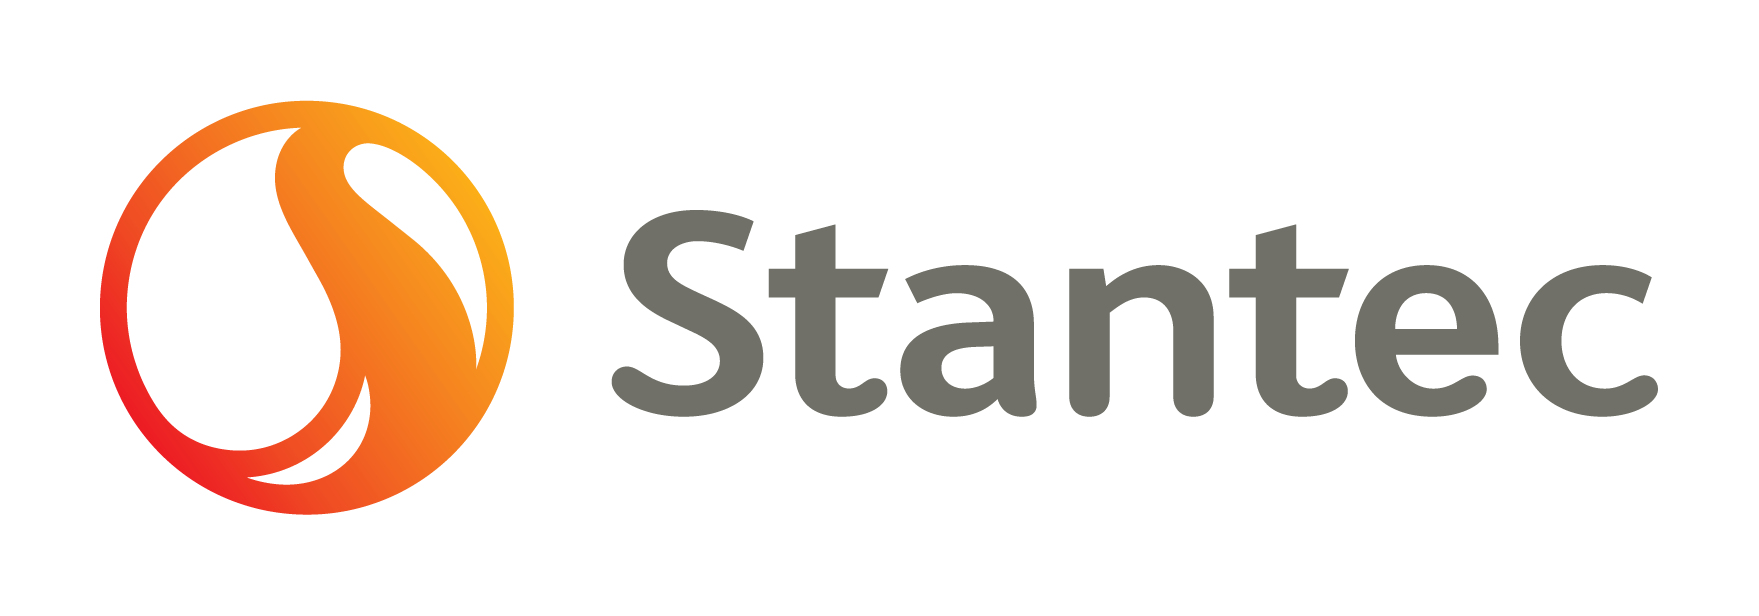 stantecpng